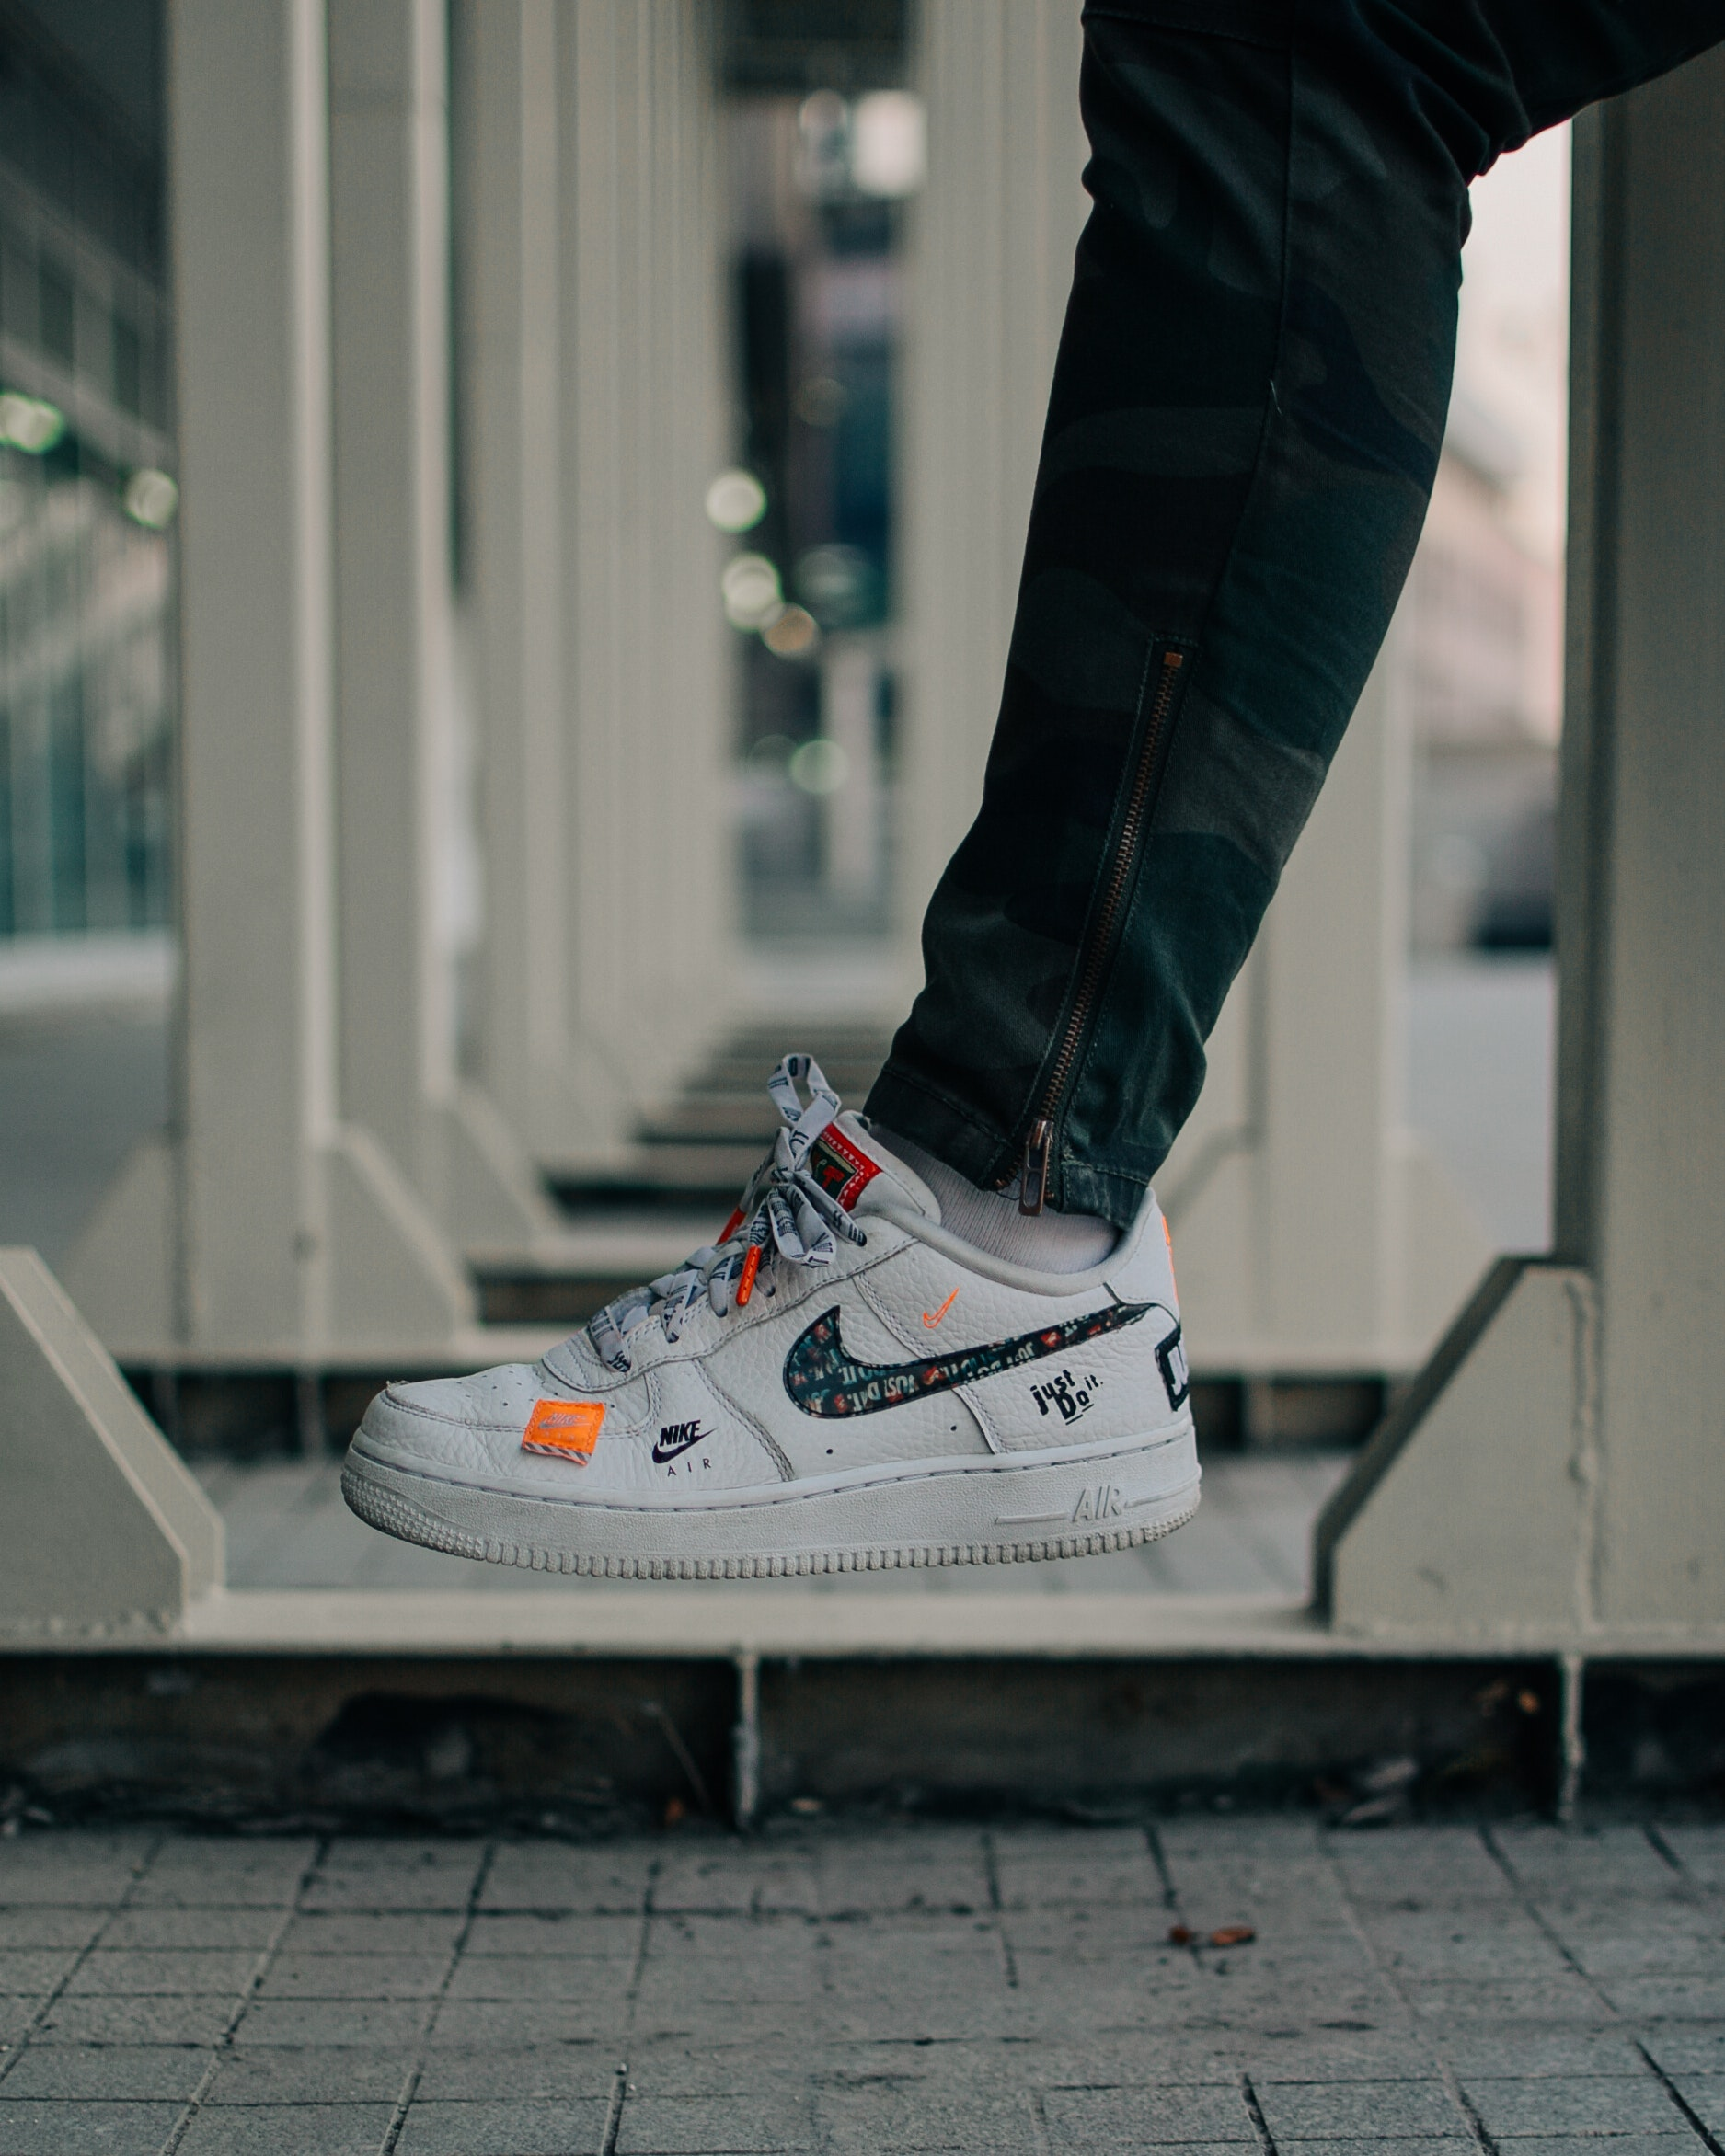 Selective Focus Photography Of Person Wearing Nike Air Force